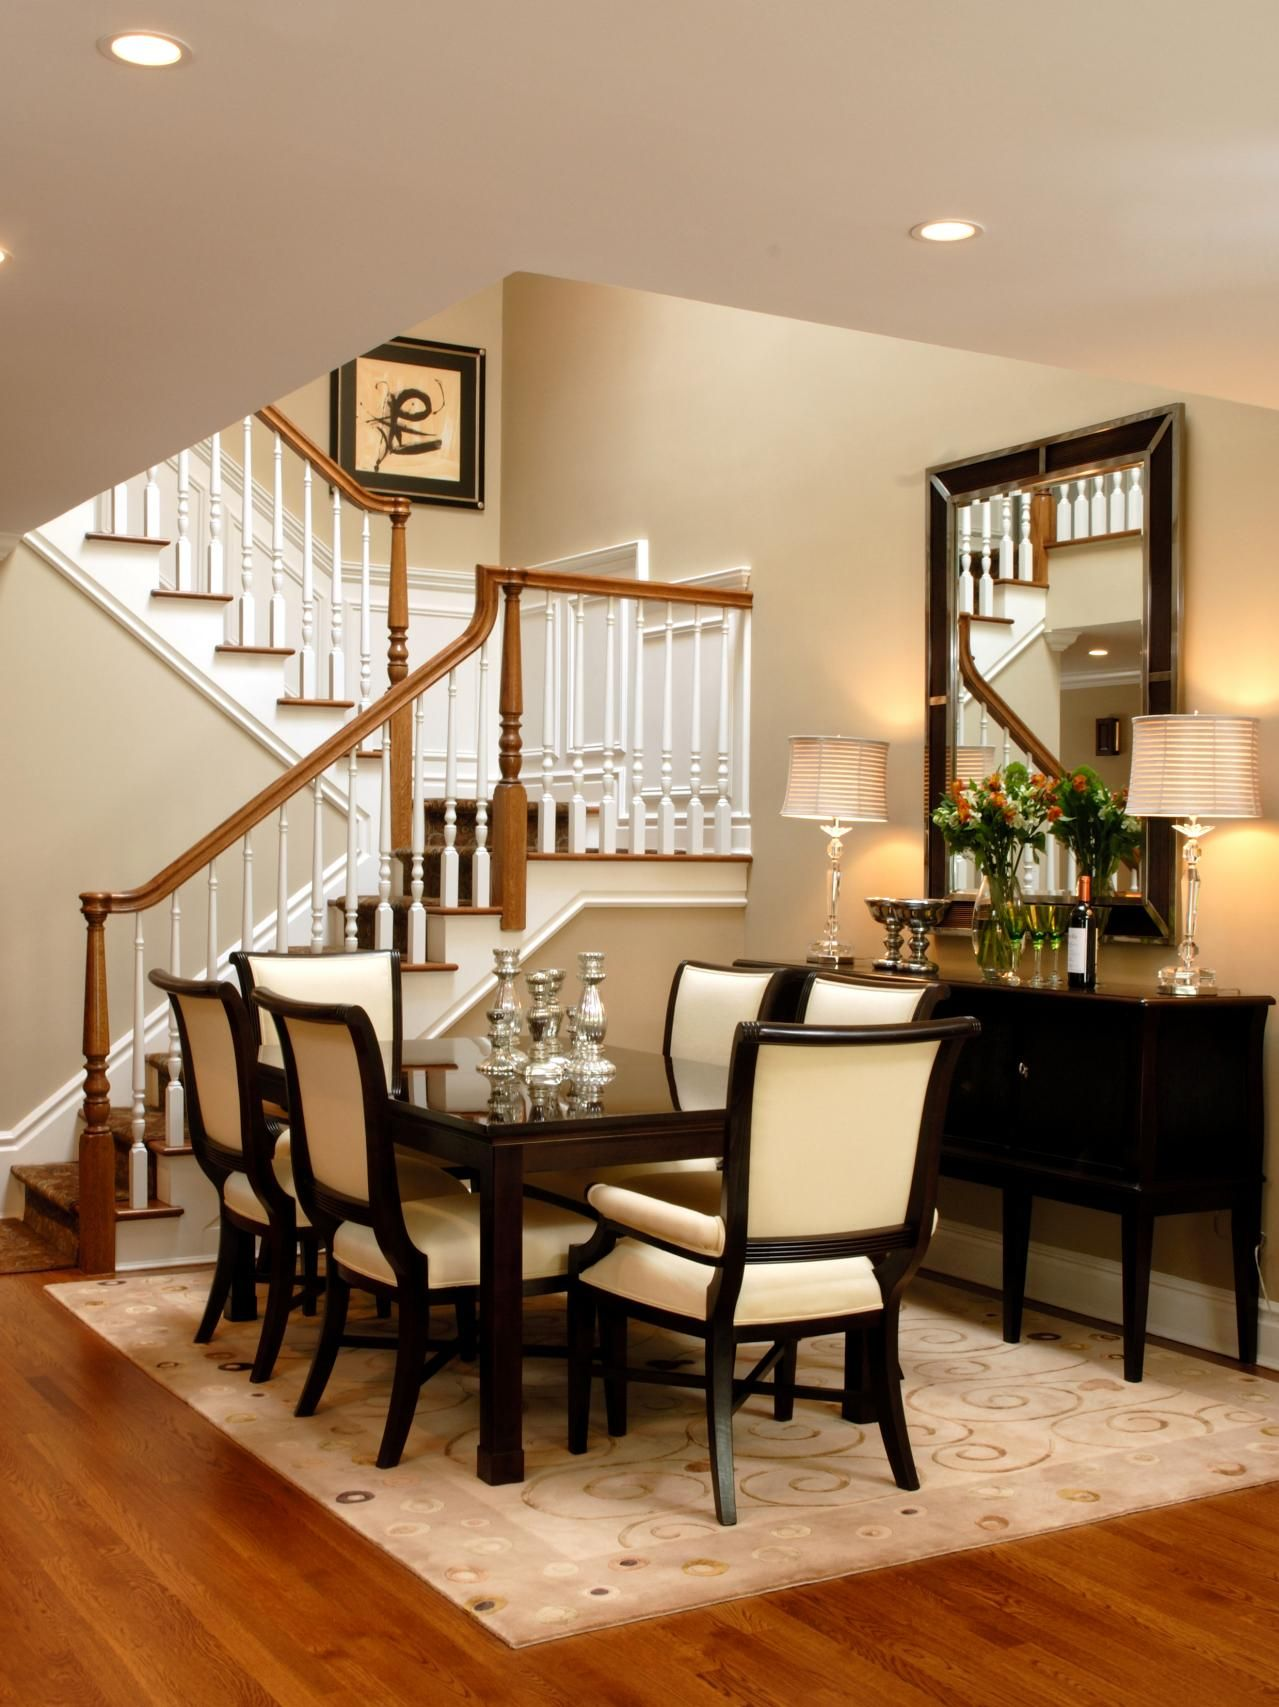 Dining Room Dark Romantic: This Stylish Dining Room With Dark Brown And Cream Accents